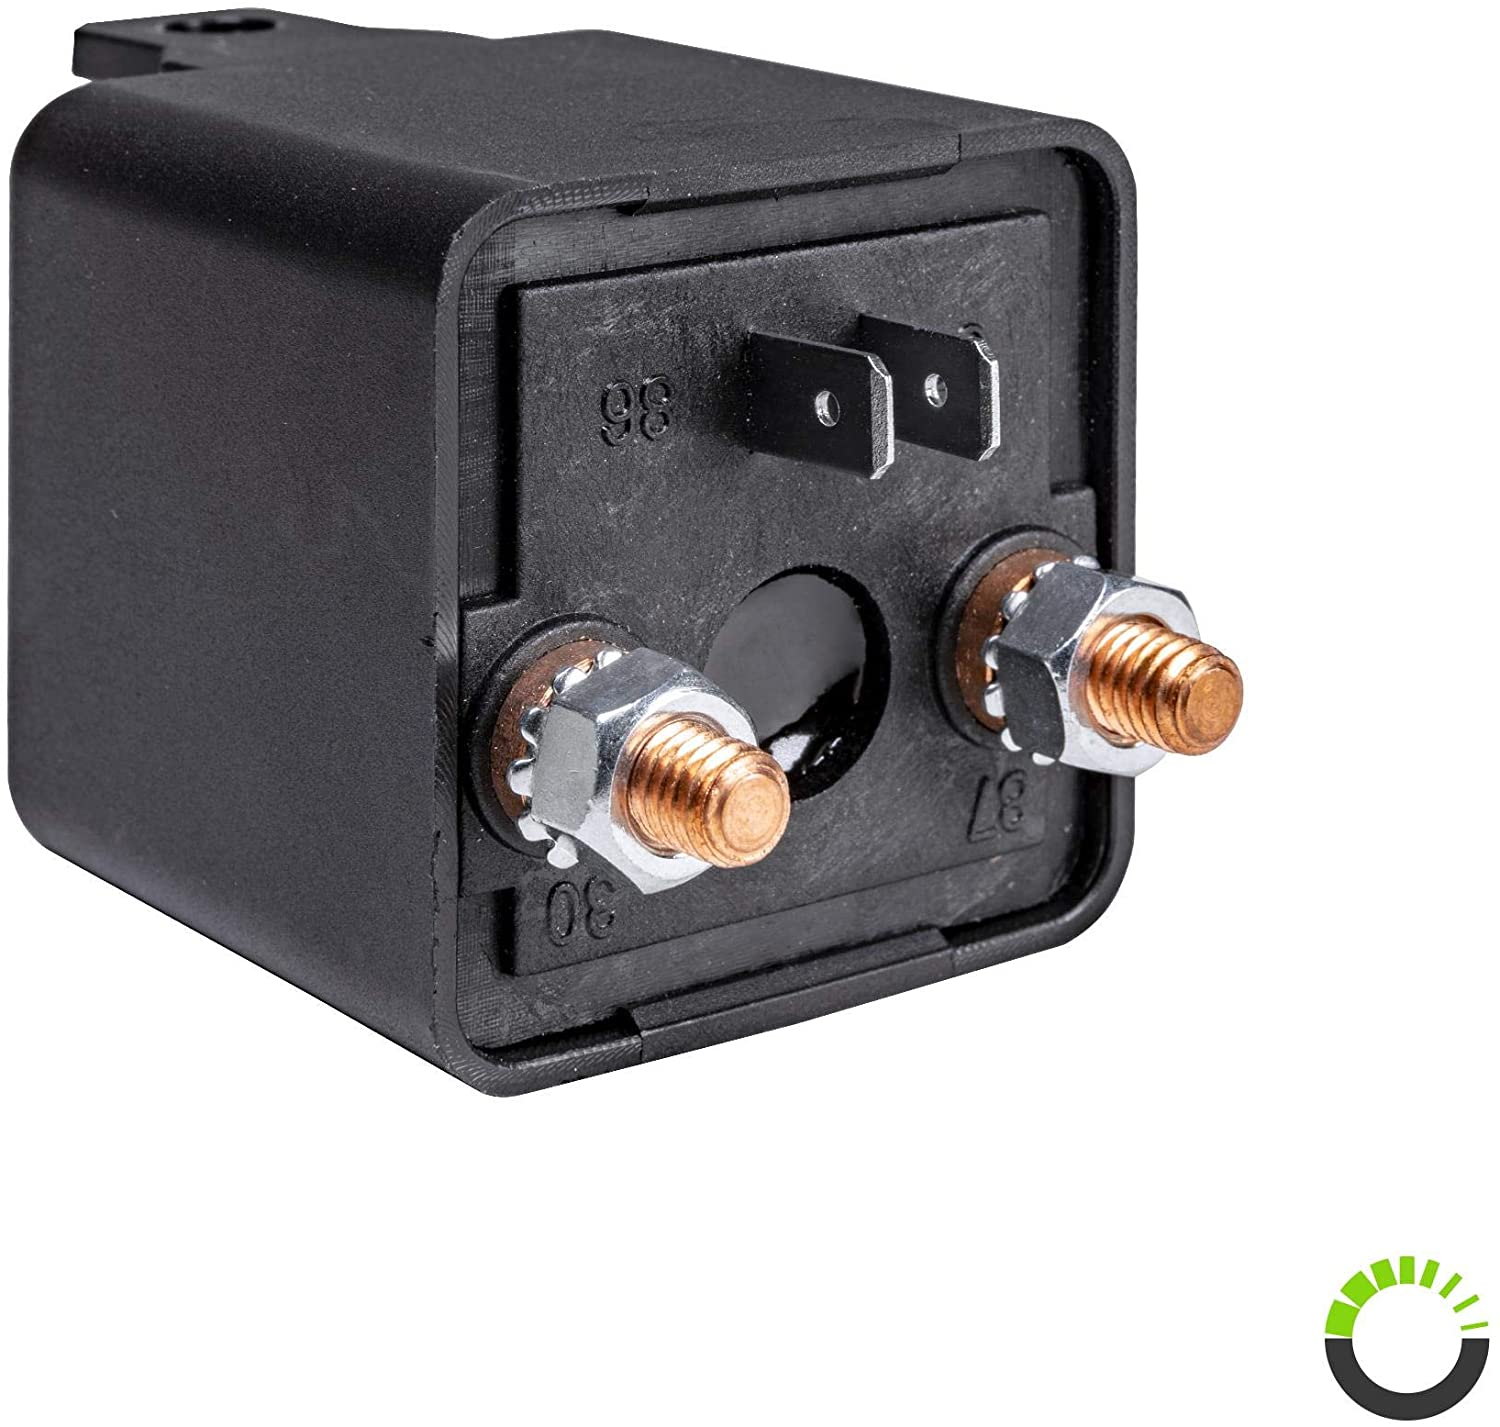 4 Terminal Relays for Truck Boat Marine OLS 12V 200 Amp Split Charge Relay Switch